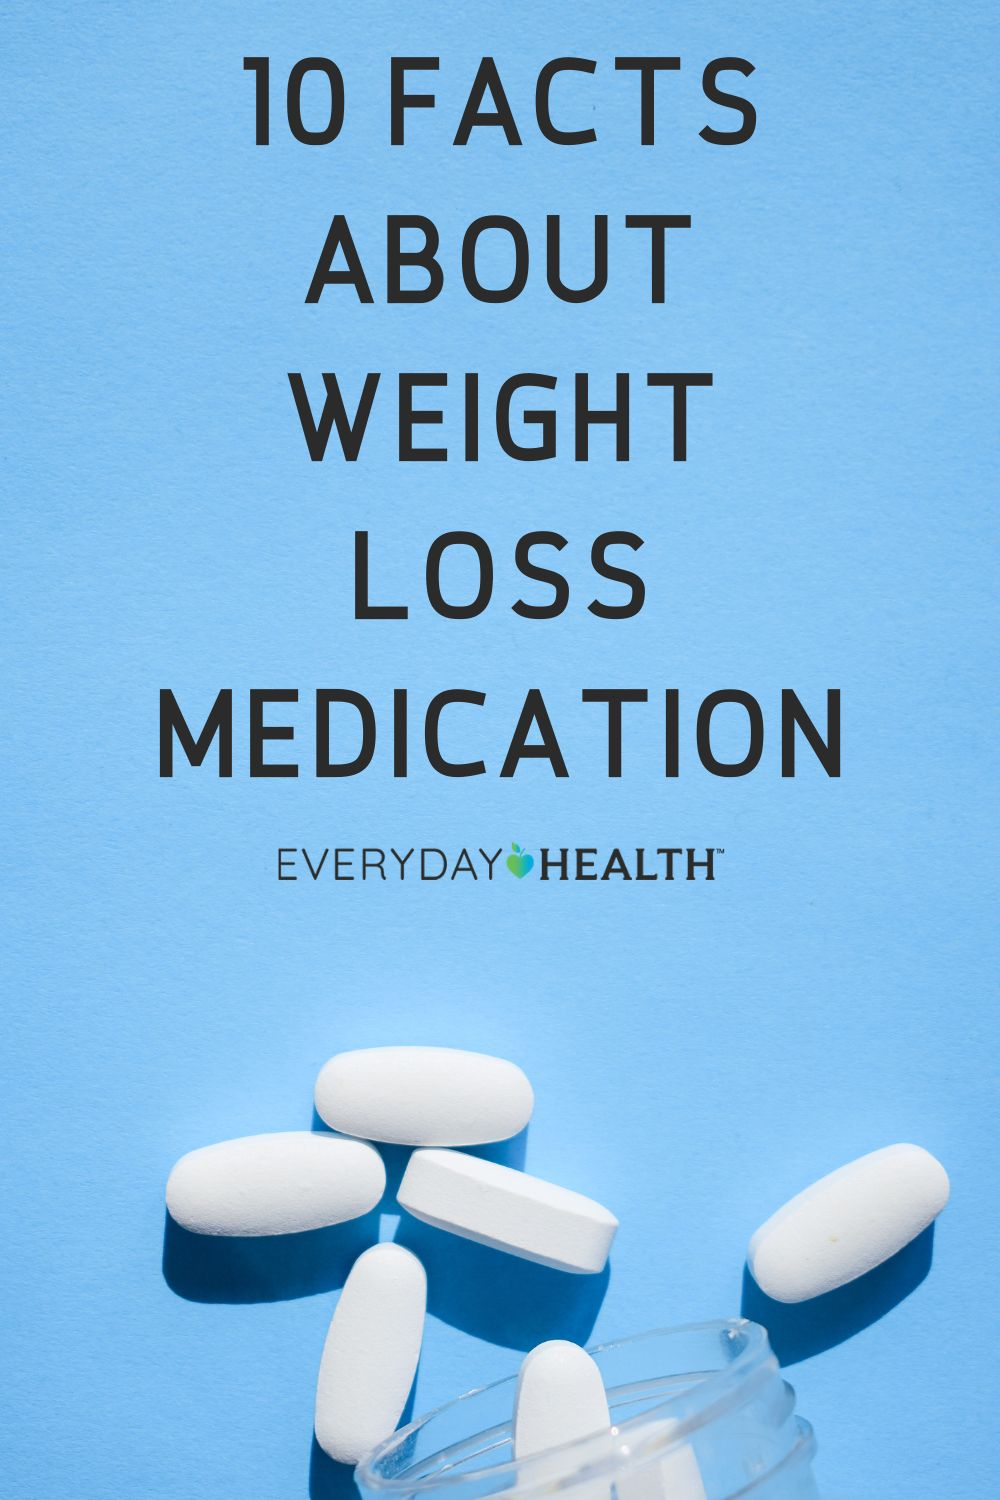 10 Essential Facts About Weight Loss Medication | Everyday Health